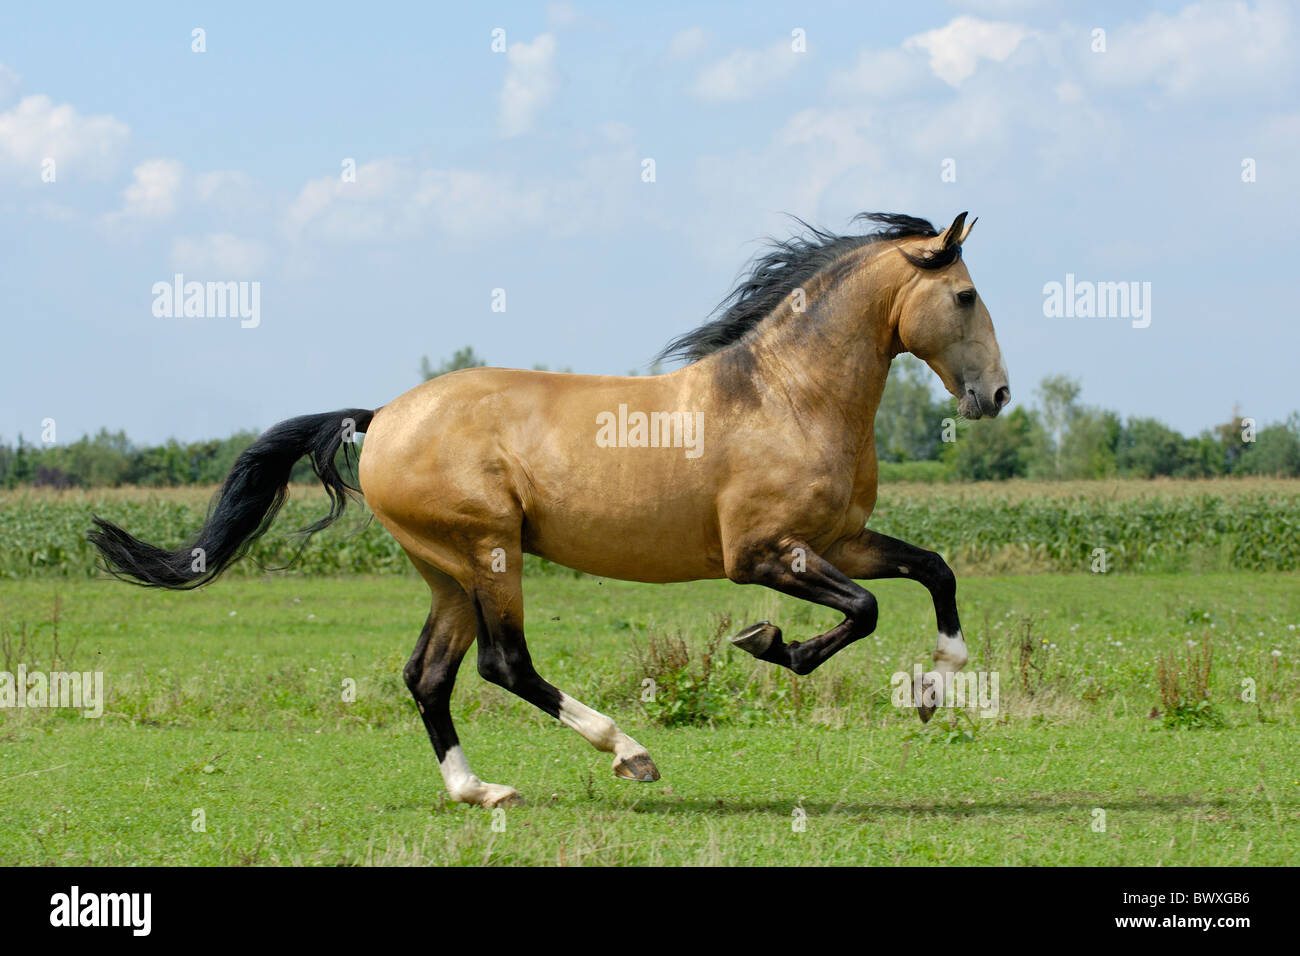 Lusitano horse stallion galloping in the field - Stock Image